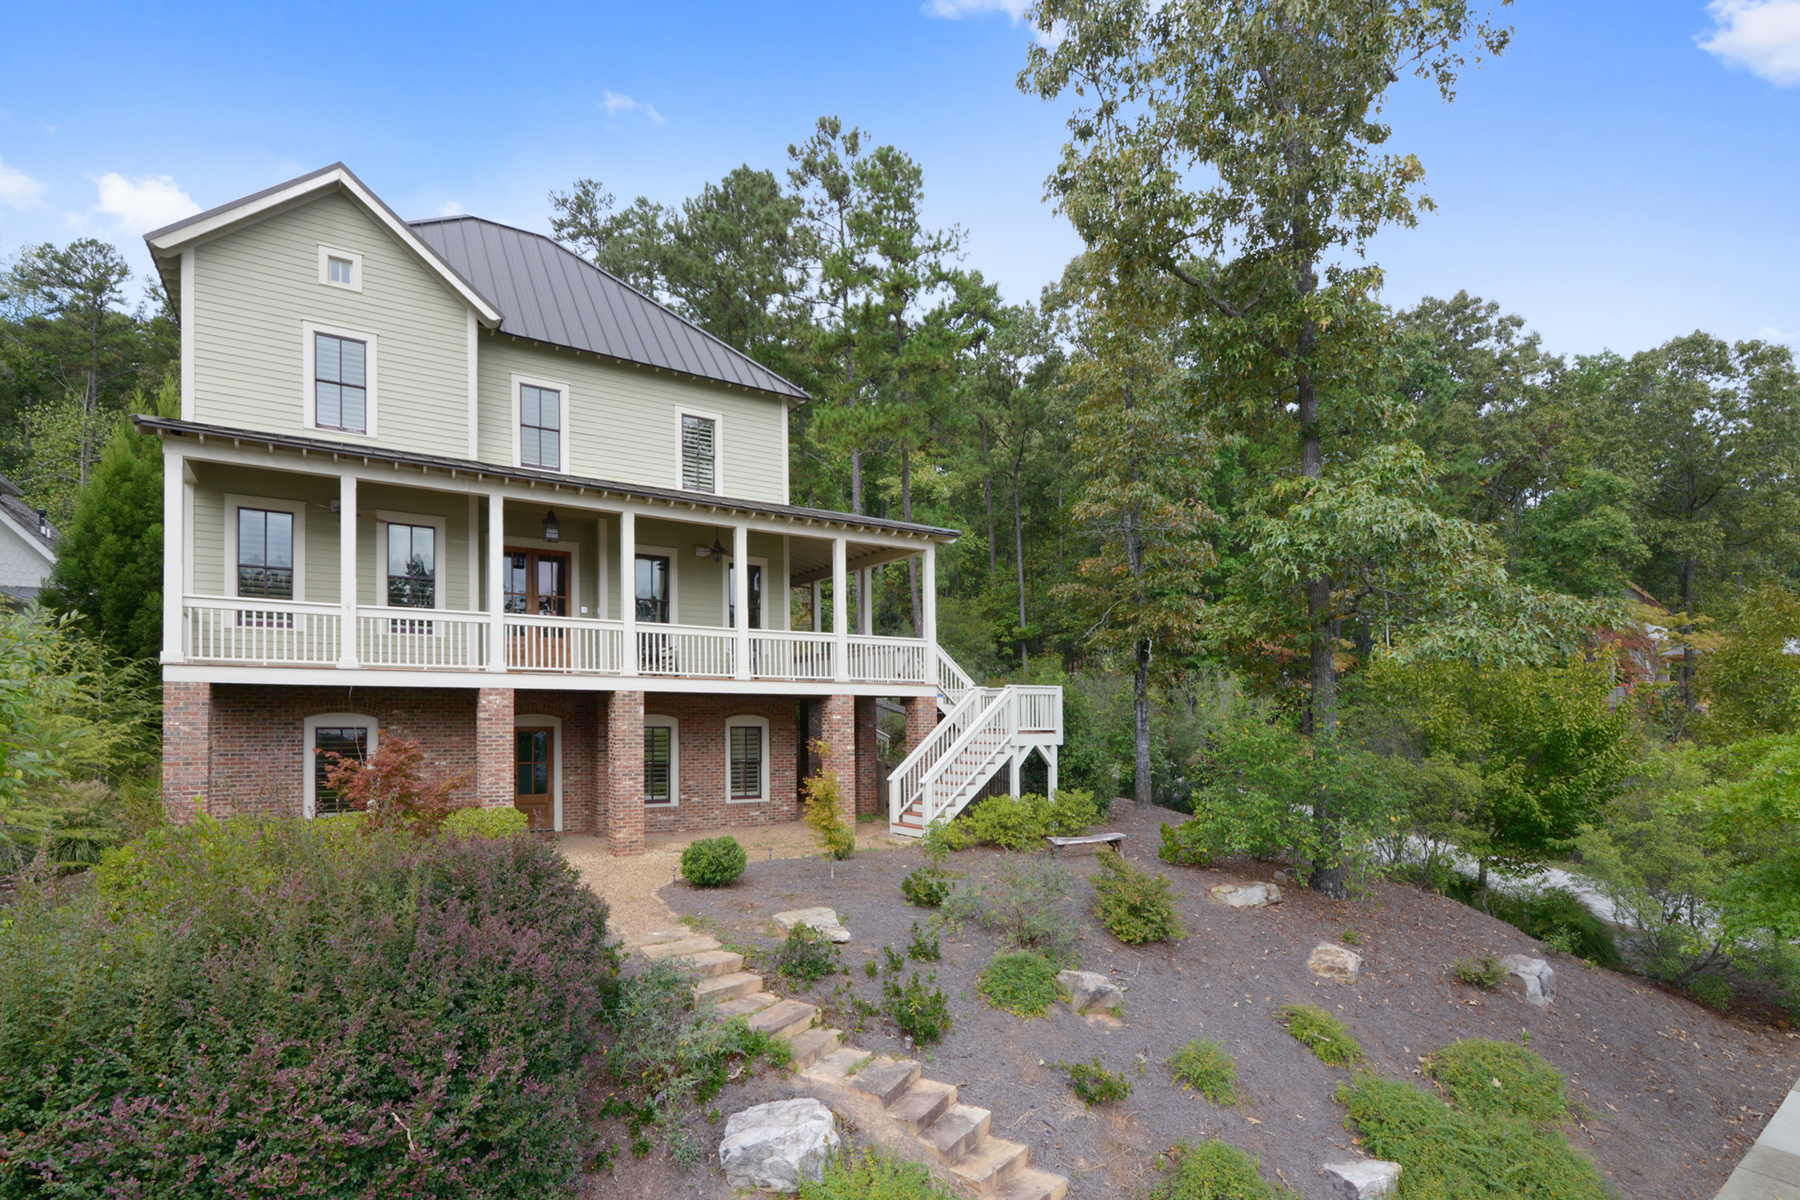 Additional photo for property listing at Upscale Serenbe Farmhouse-Style Home 10723 Serenbe Lane Chattahoochee Hills, Γεωργια 30268 Ηνωμενεσ Πολιτειεσ